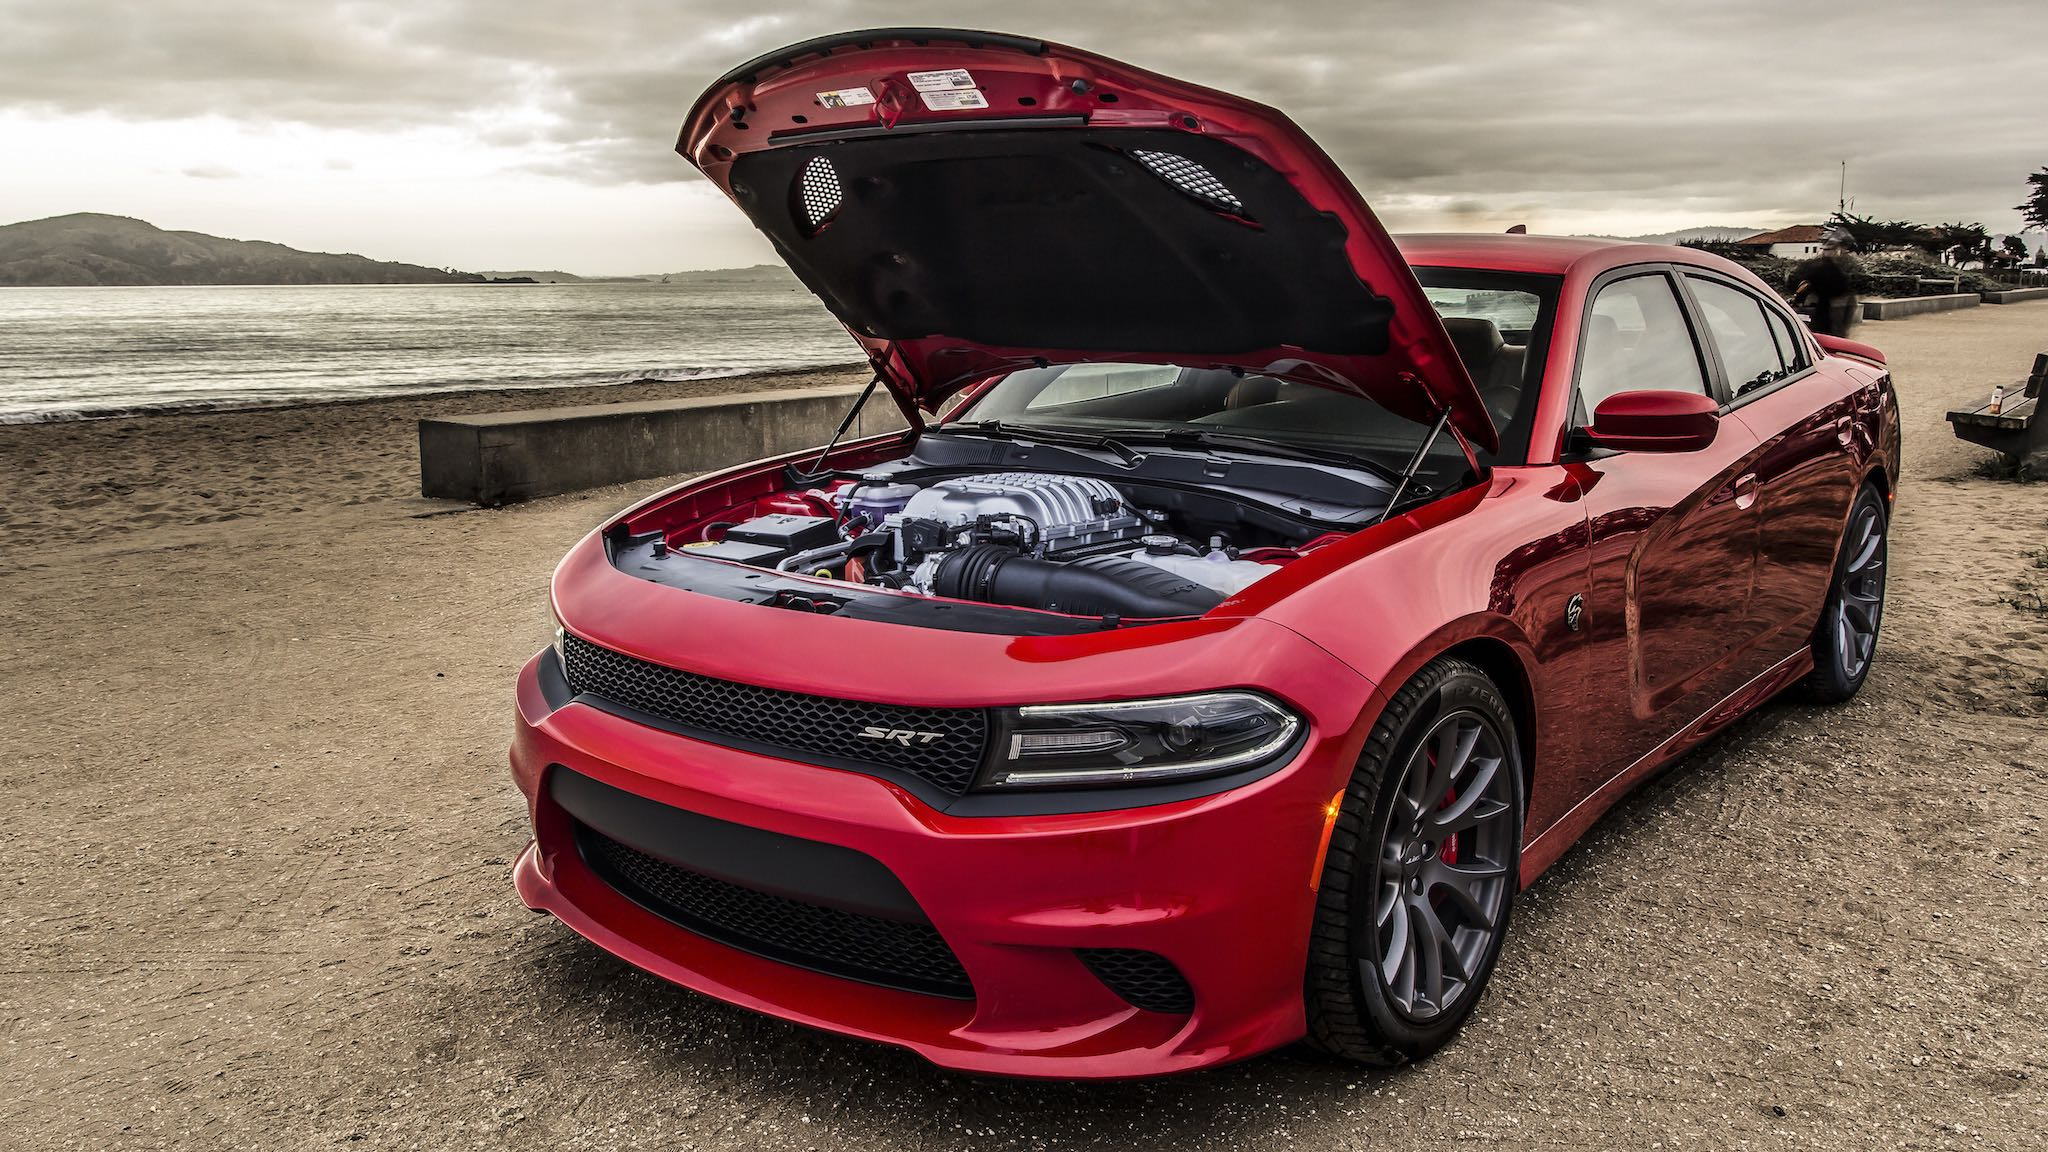 Dodge Charger Hellcat Price >> Dodge Charger SRT Hellcat Review | CarAdvice